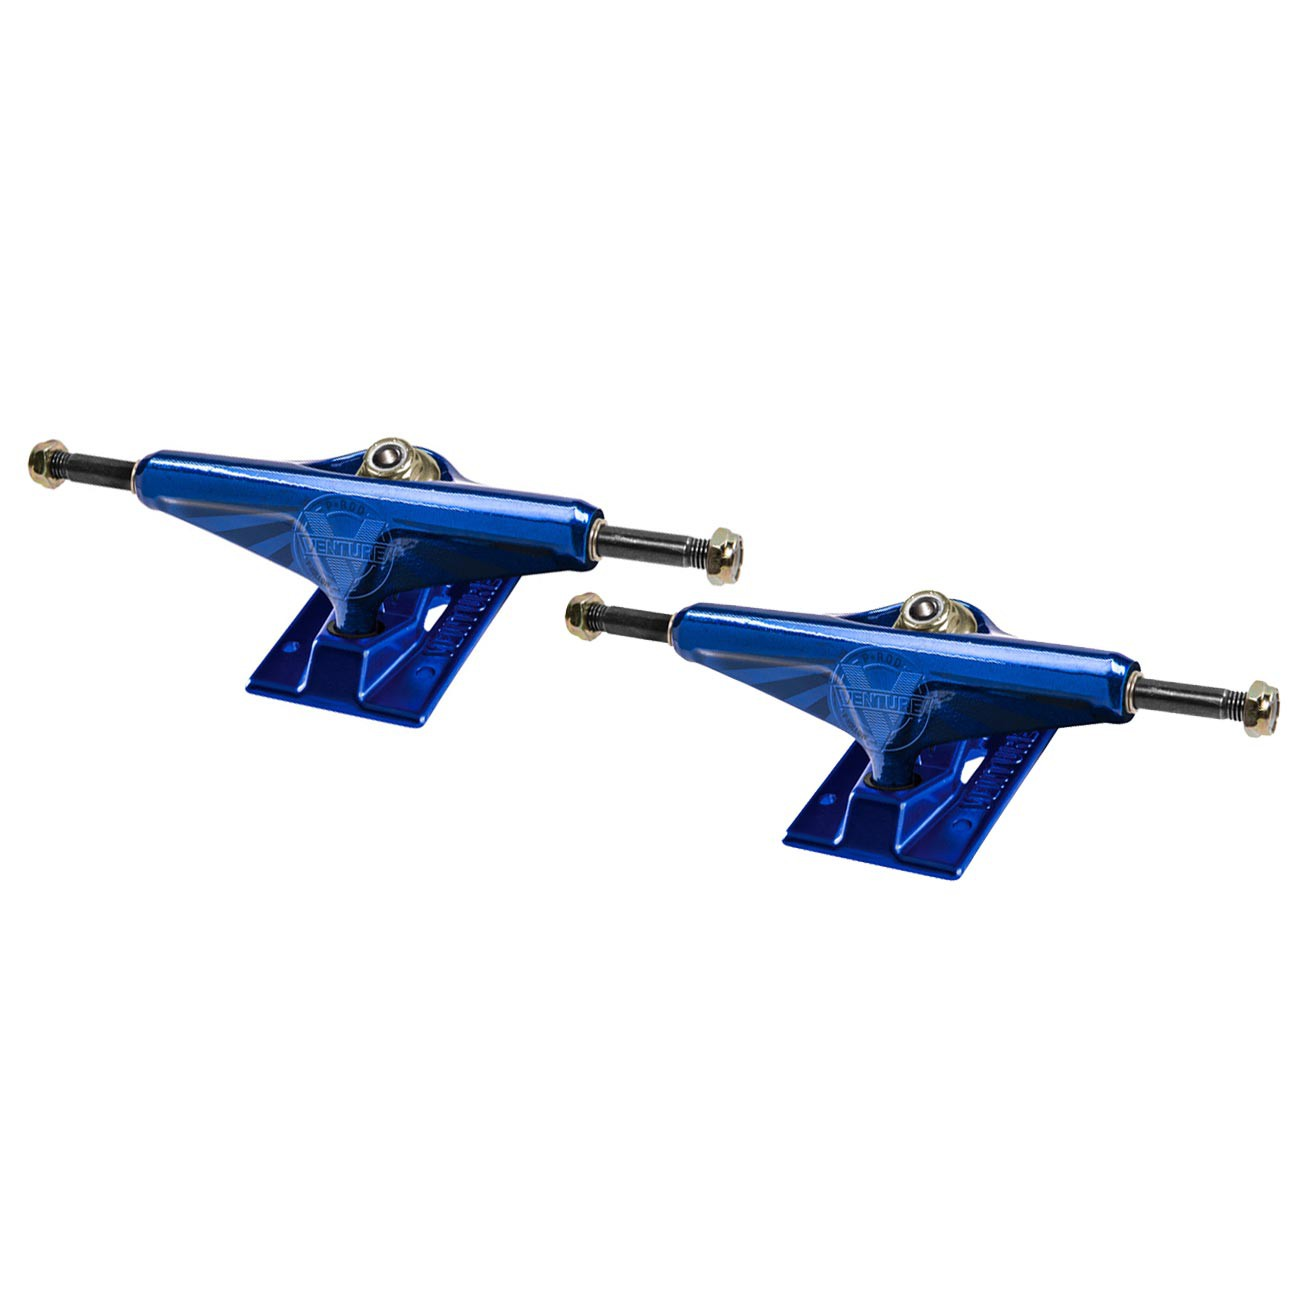 Truck Venture P-Rod V-Hollow Prime 136 Mm candy blue